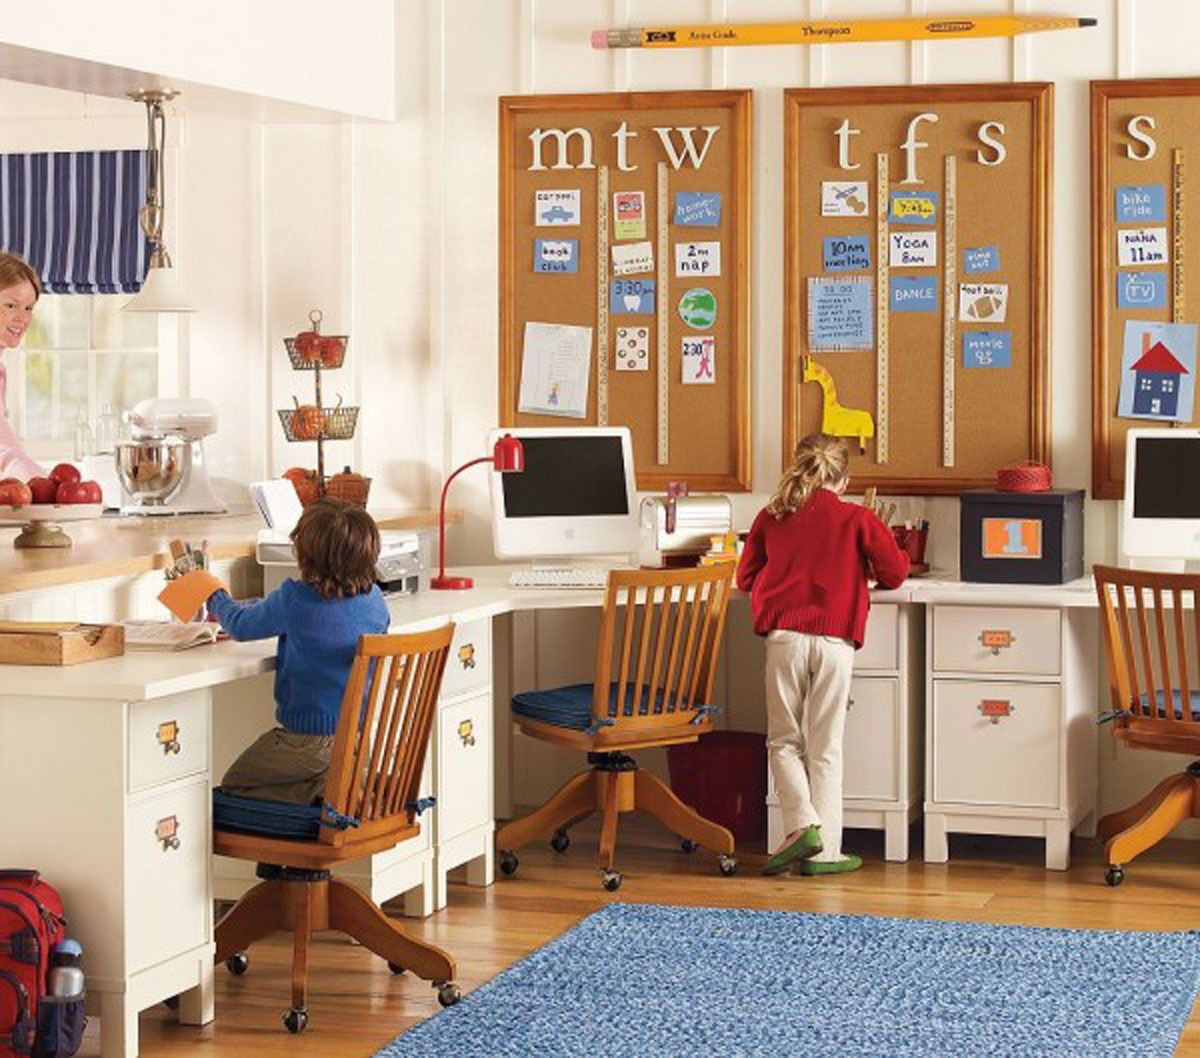 Charming Study Desks Funiture Shared For Kids With Board Ideas   Kids  Bedroom | Stupic. Part 48